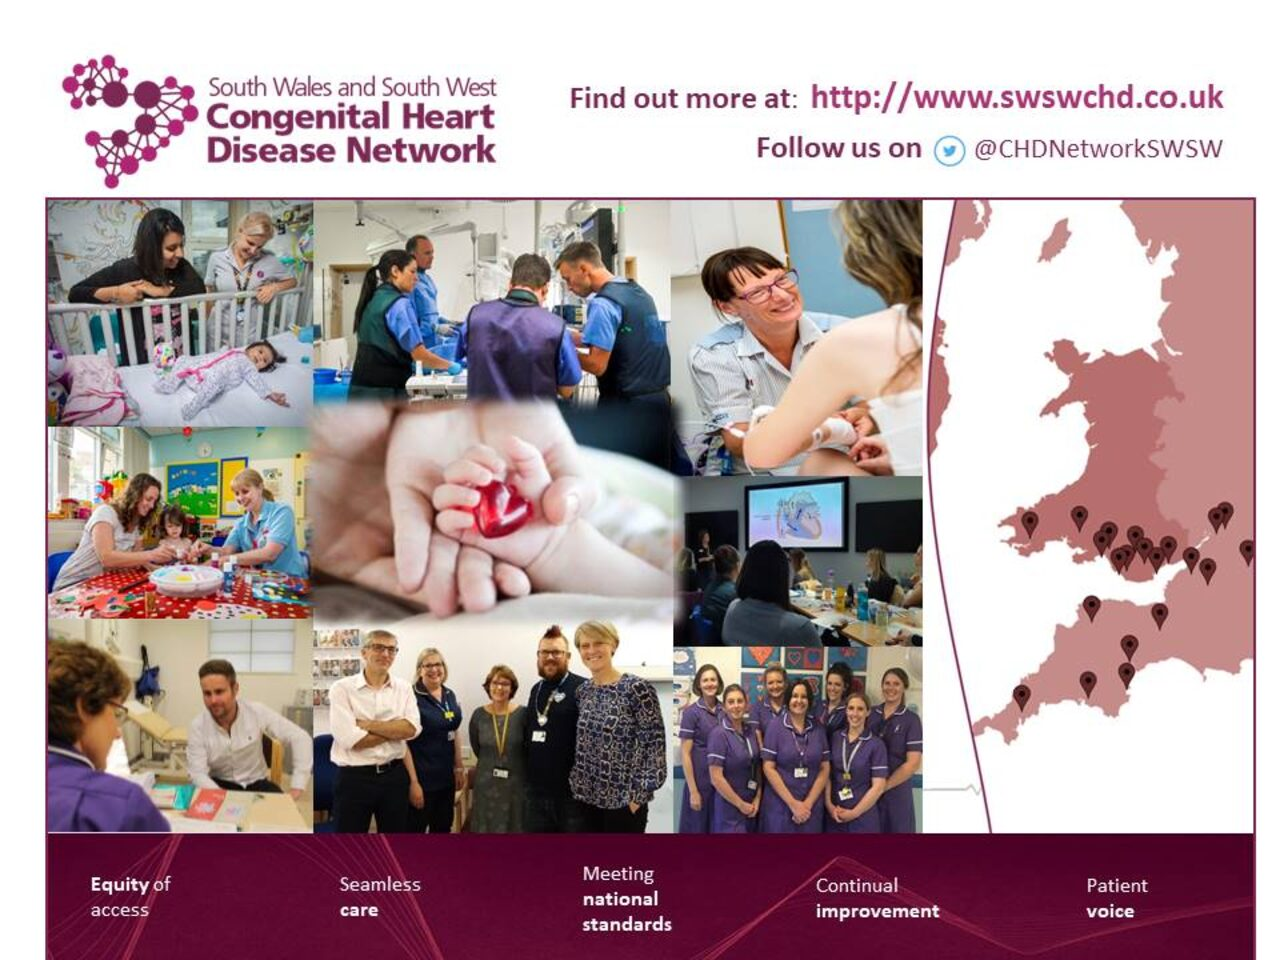 South Wales and South West Congenital Heart Disease Network